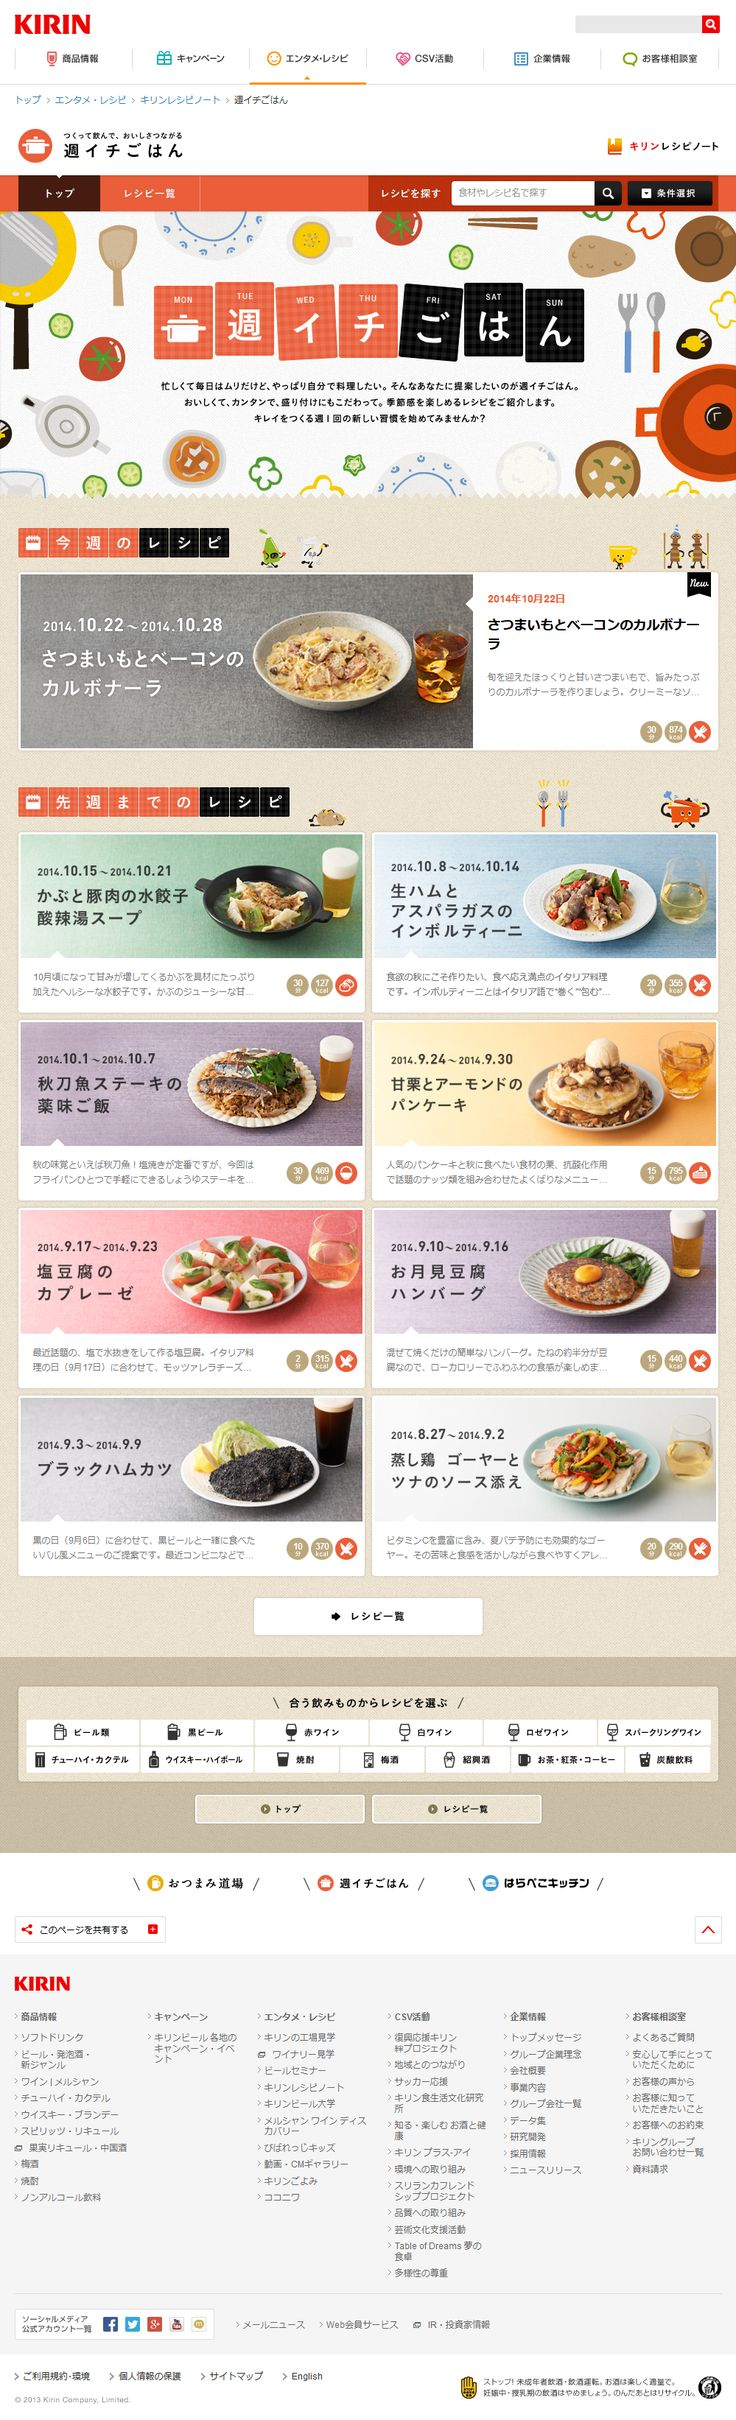 http://recipe.kirin.co.jp/weekly/ // Hi Friends, look what I just found on #web #design! Make sure to follow us @moirestudiosjkt to see more pins like this | Moire Studios is a thriving website and graphic design studio based in Jakarta, Indonesia.